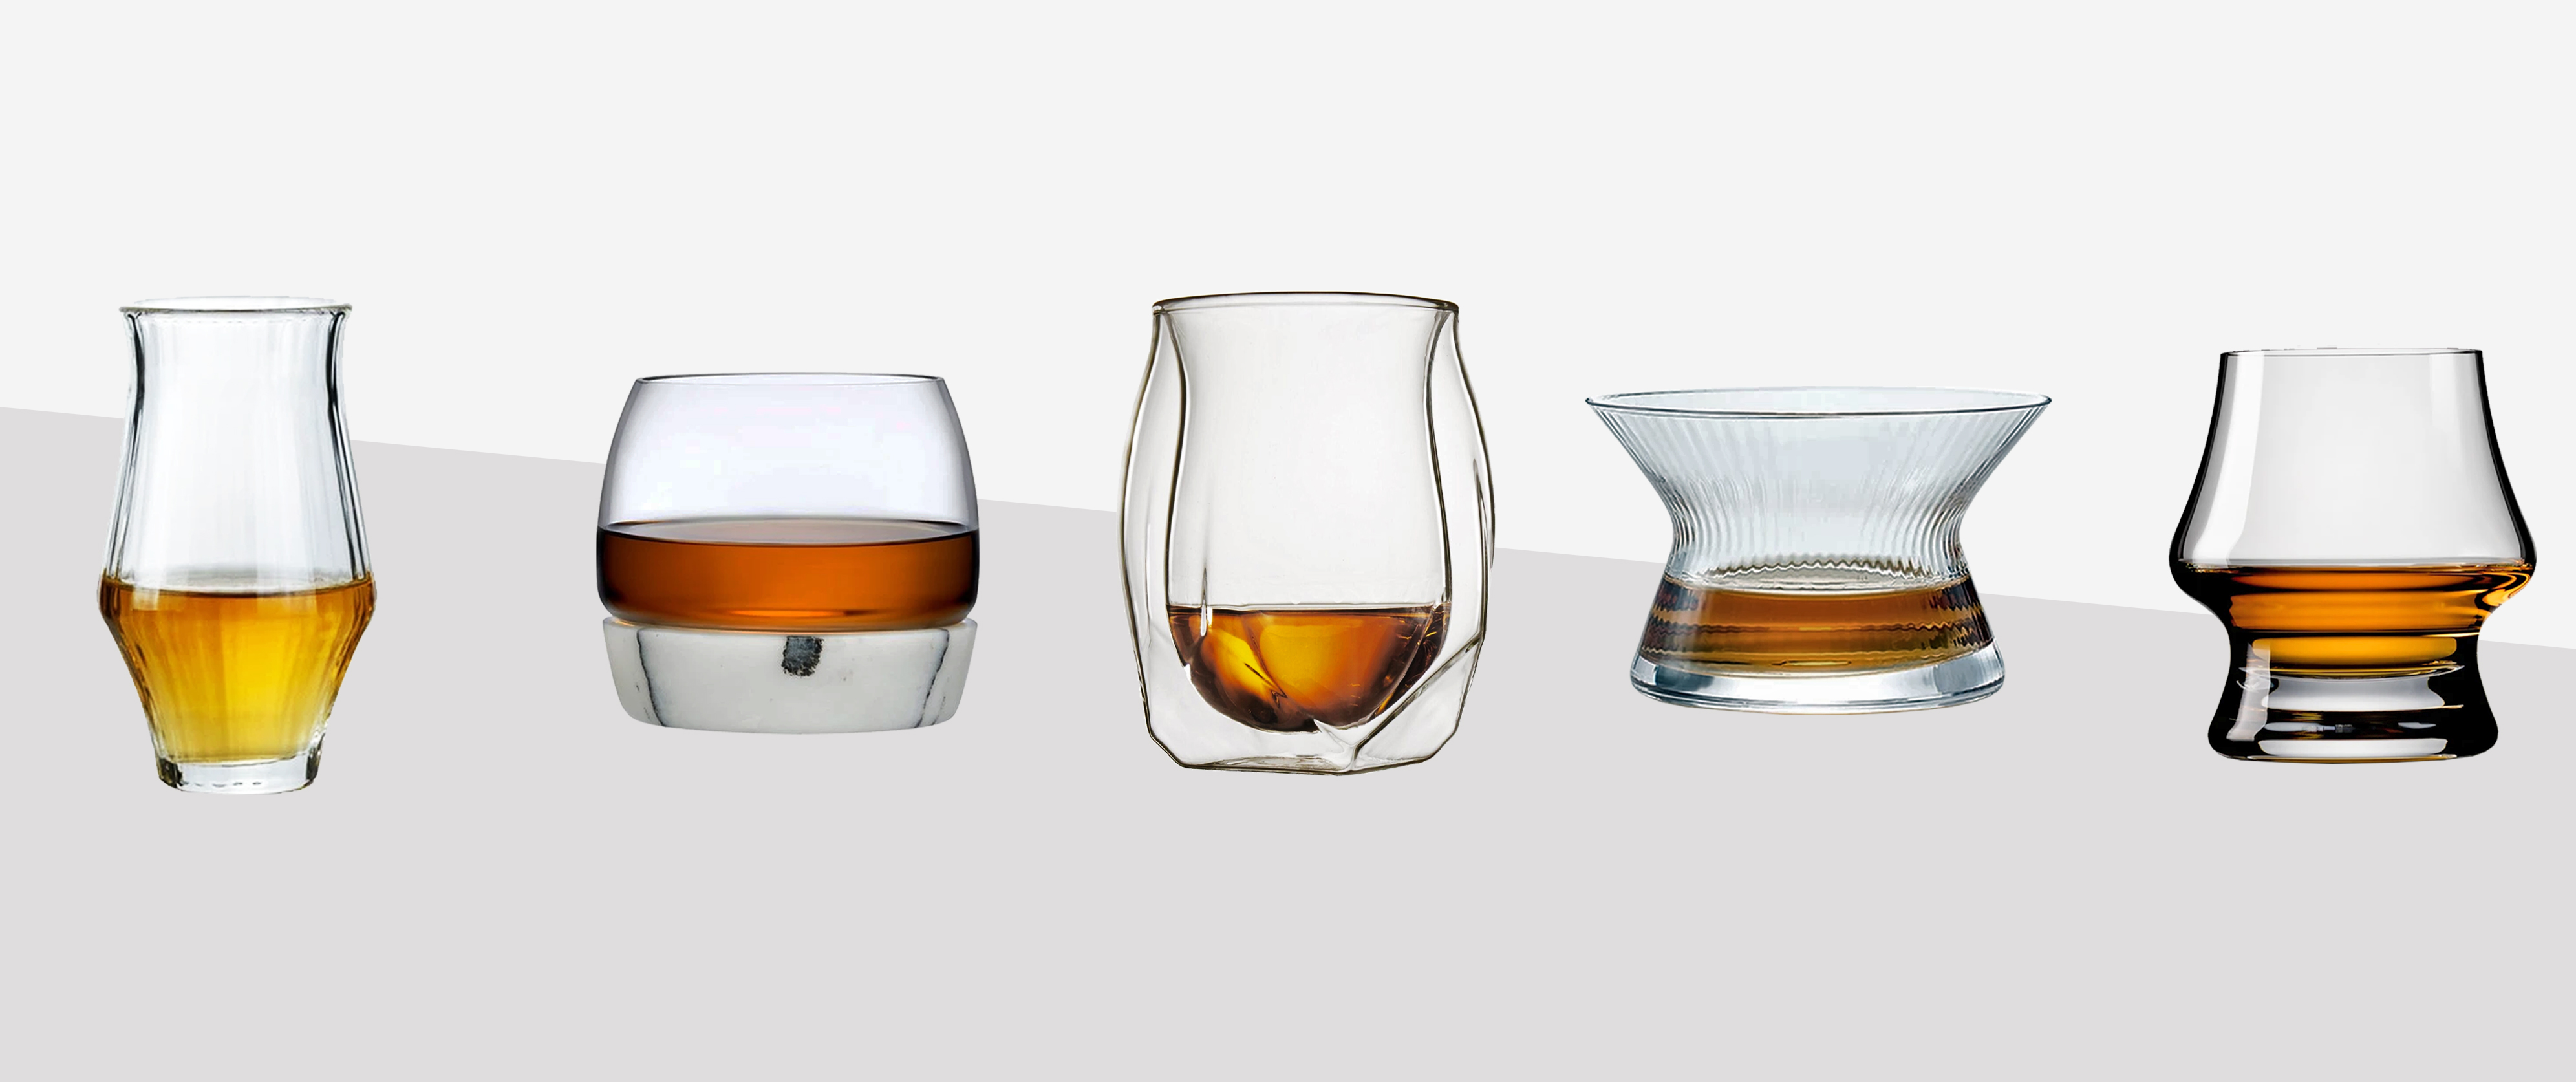 These are the best whisky glasses (to do your Scotch justice)